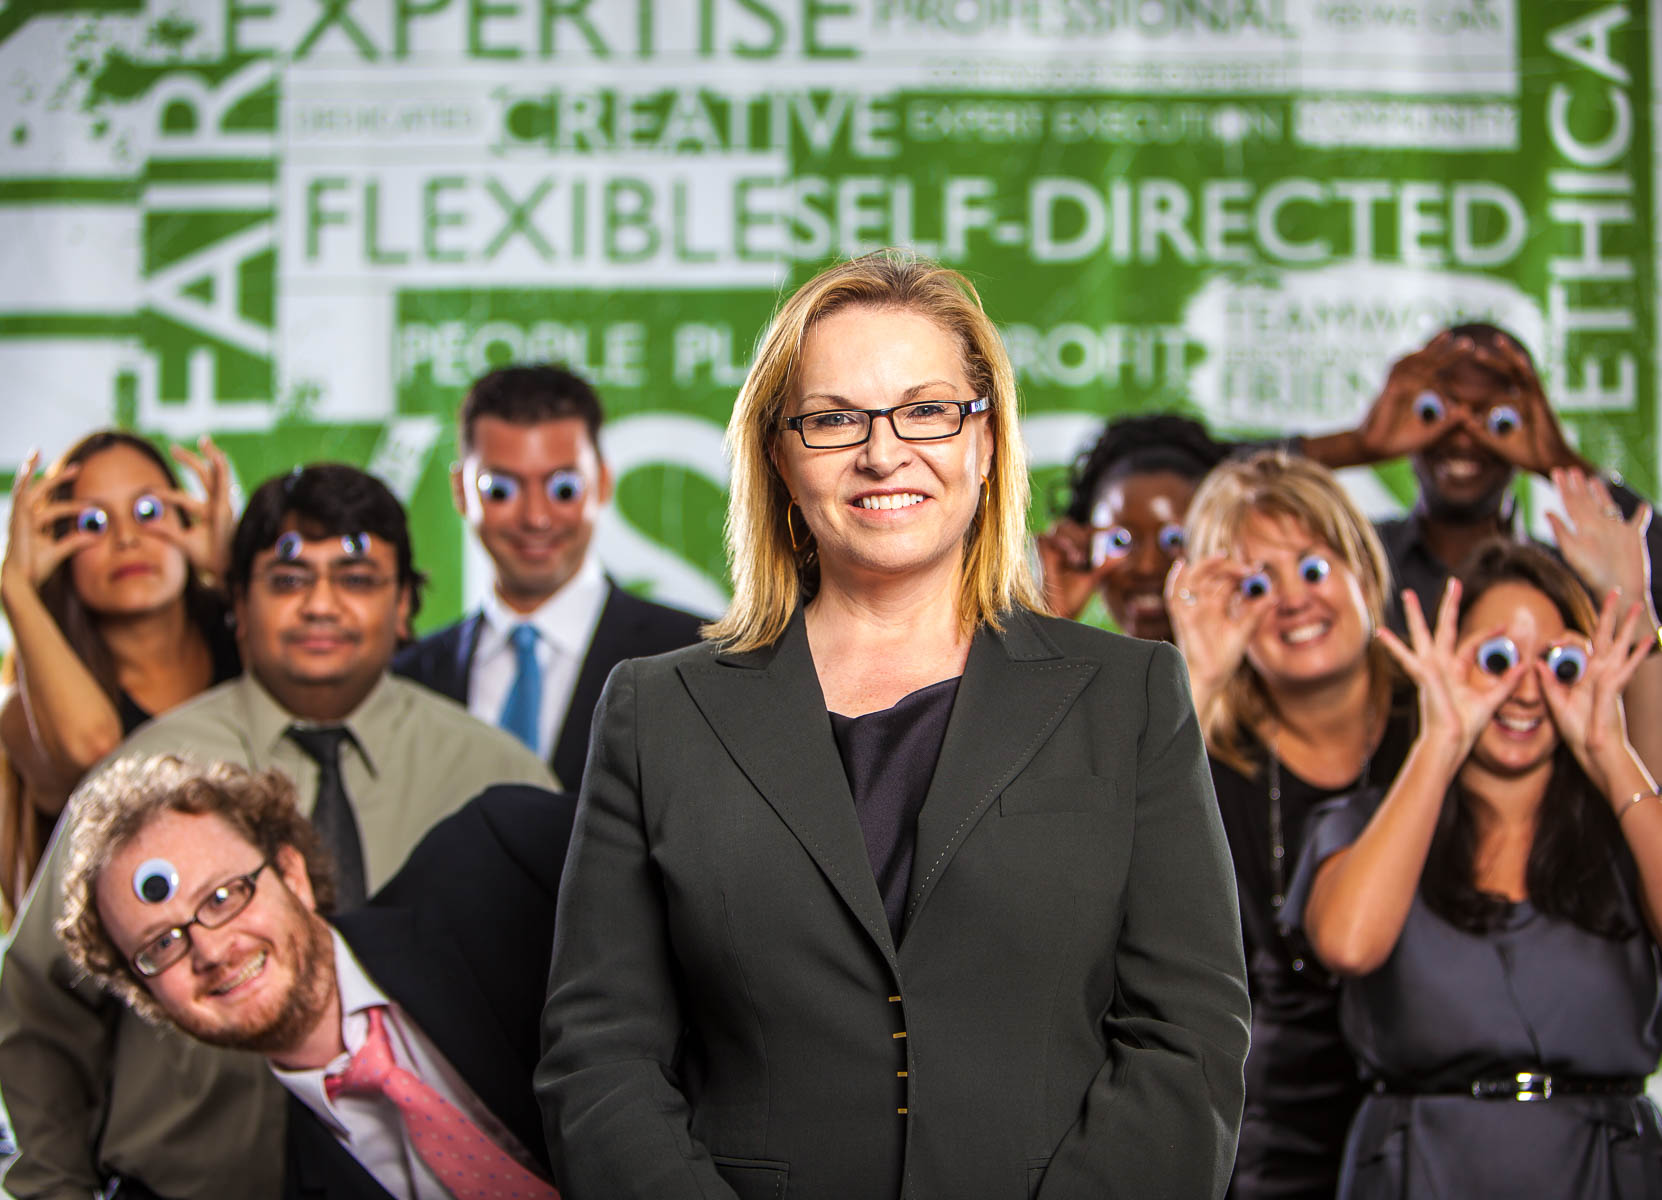 Execs - Lorna Taylor of Premier Eye Care